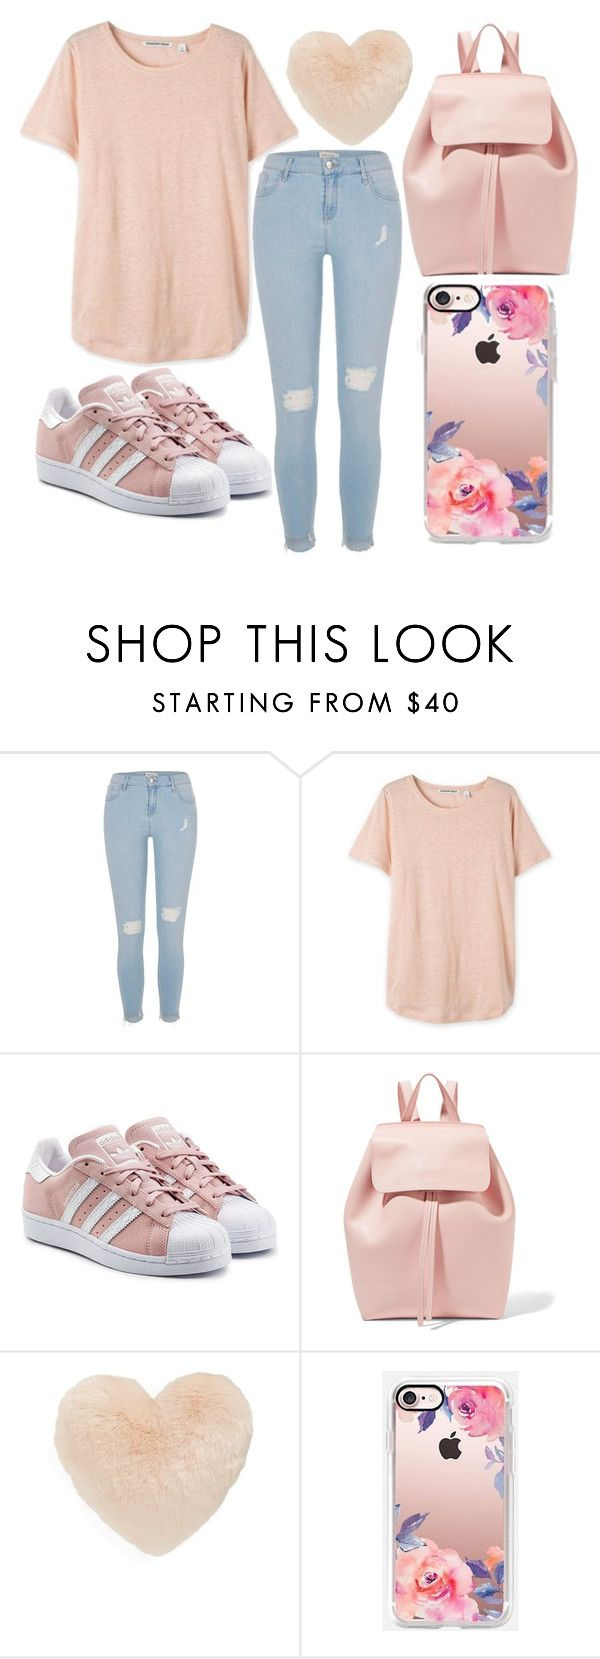 """Pink"" by kaitlyn-ashby101 ❤ liked on Polyvore featuring River Island, adidas Originals, Mansur Gavriel, Nordstrom and Casetify"